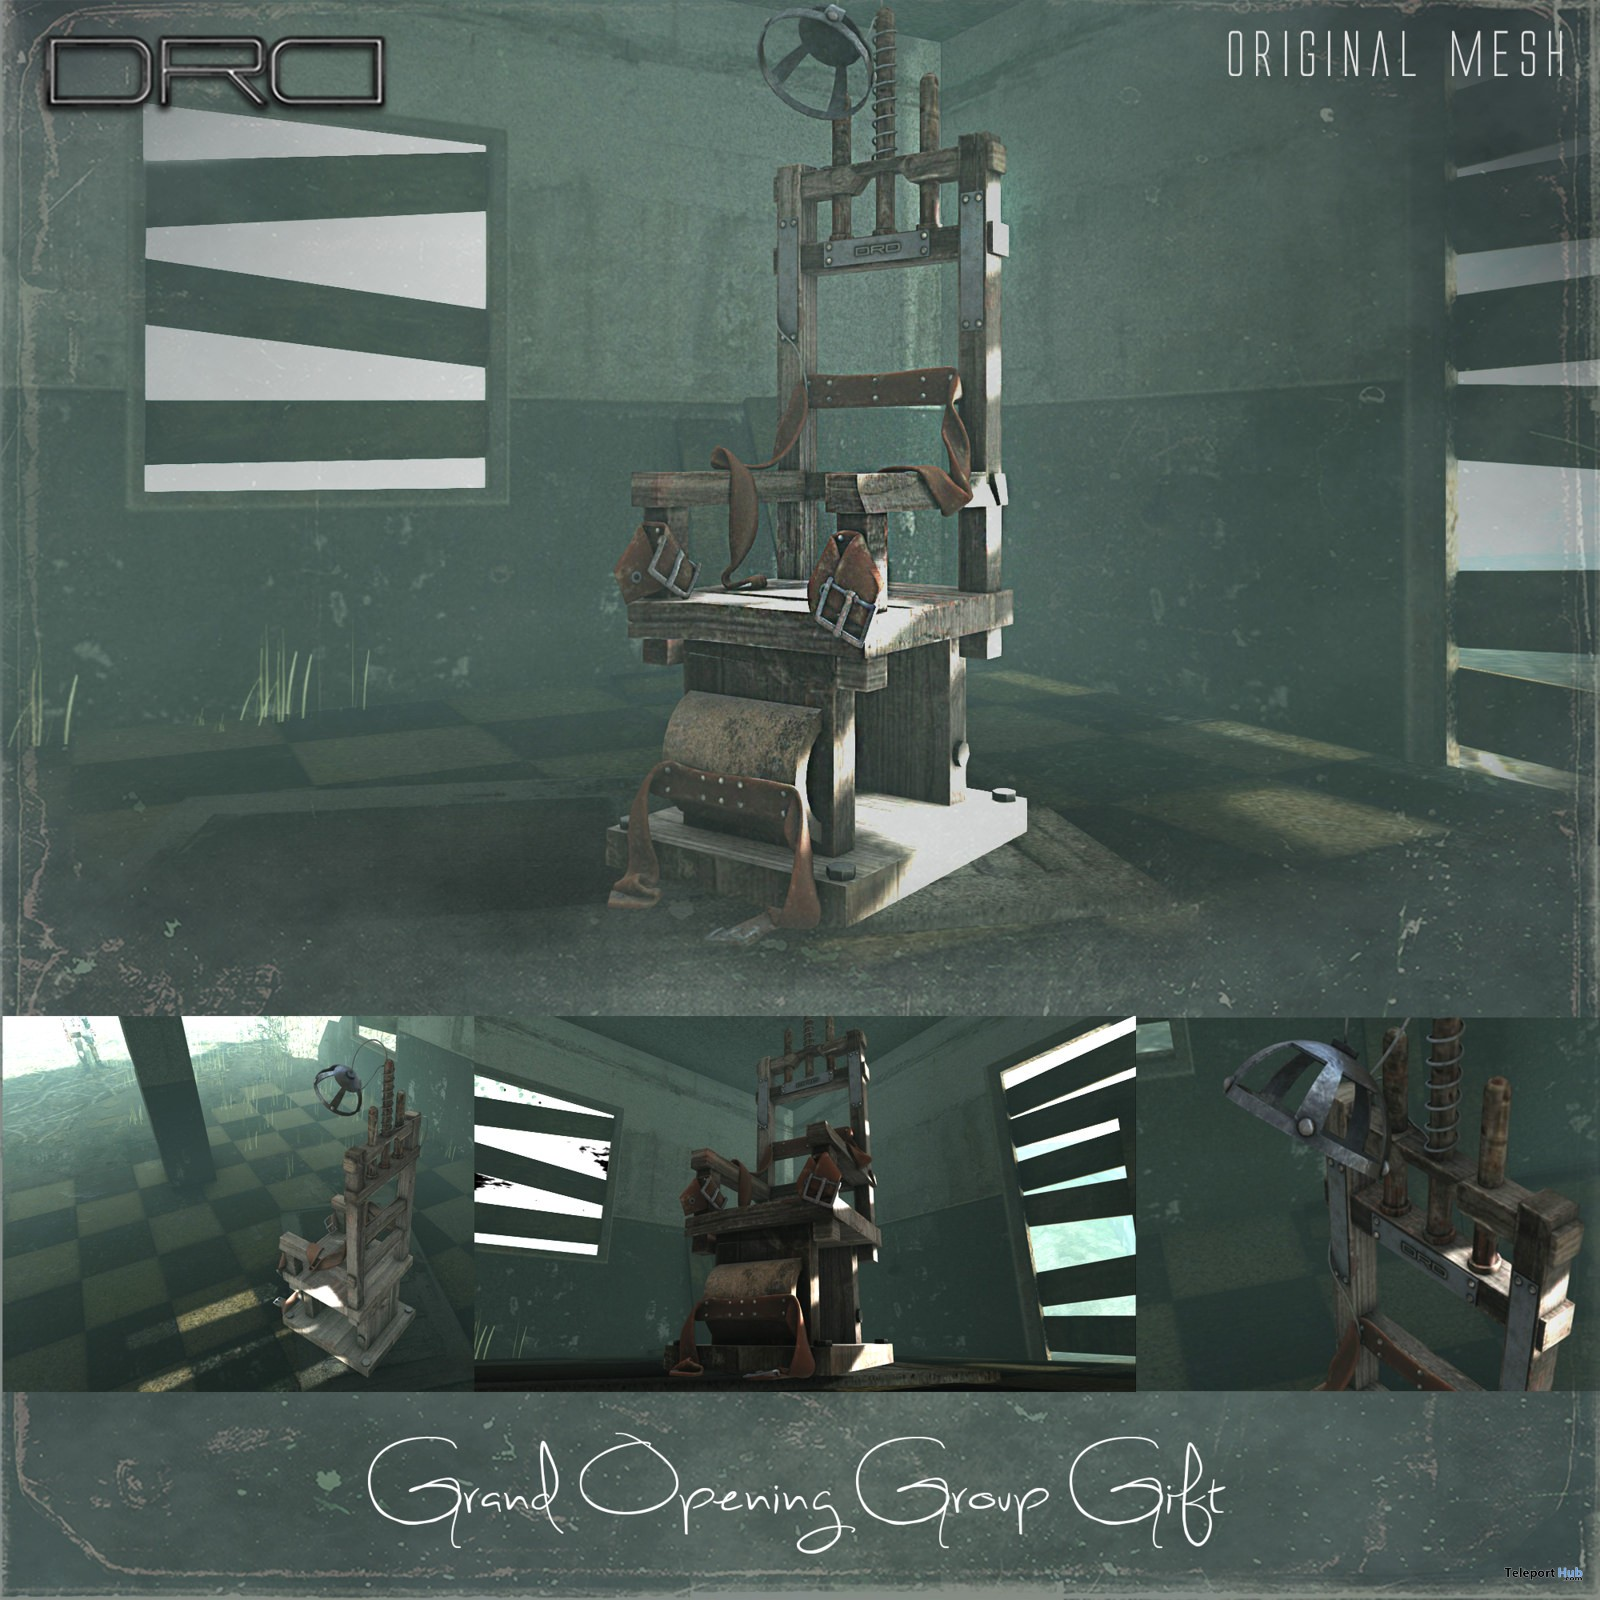 Electric Chair Store Remodeling Grand Opening Group Gift by DRD - Teleport Hub - teleporthub.com